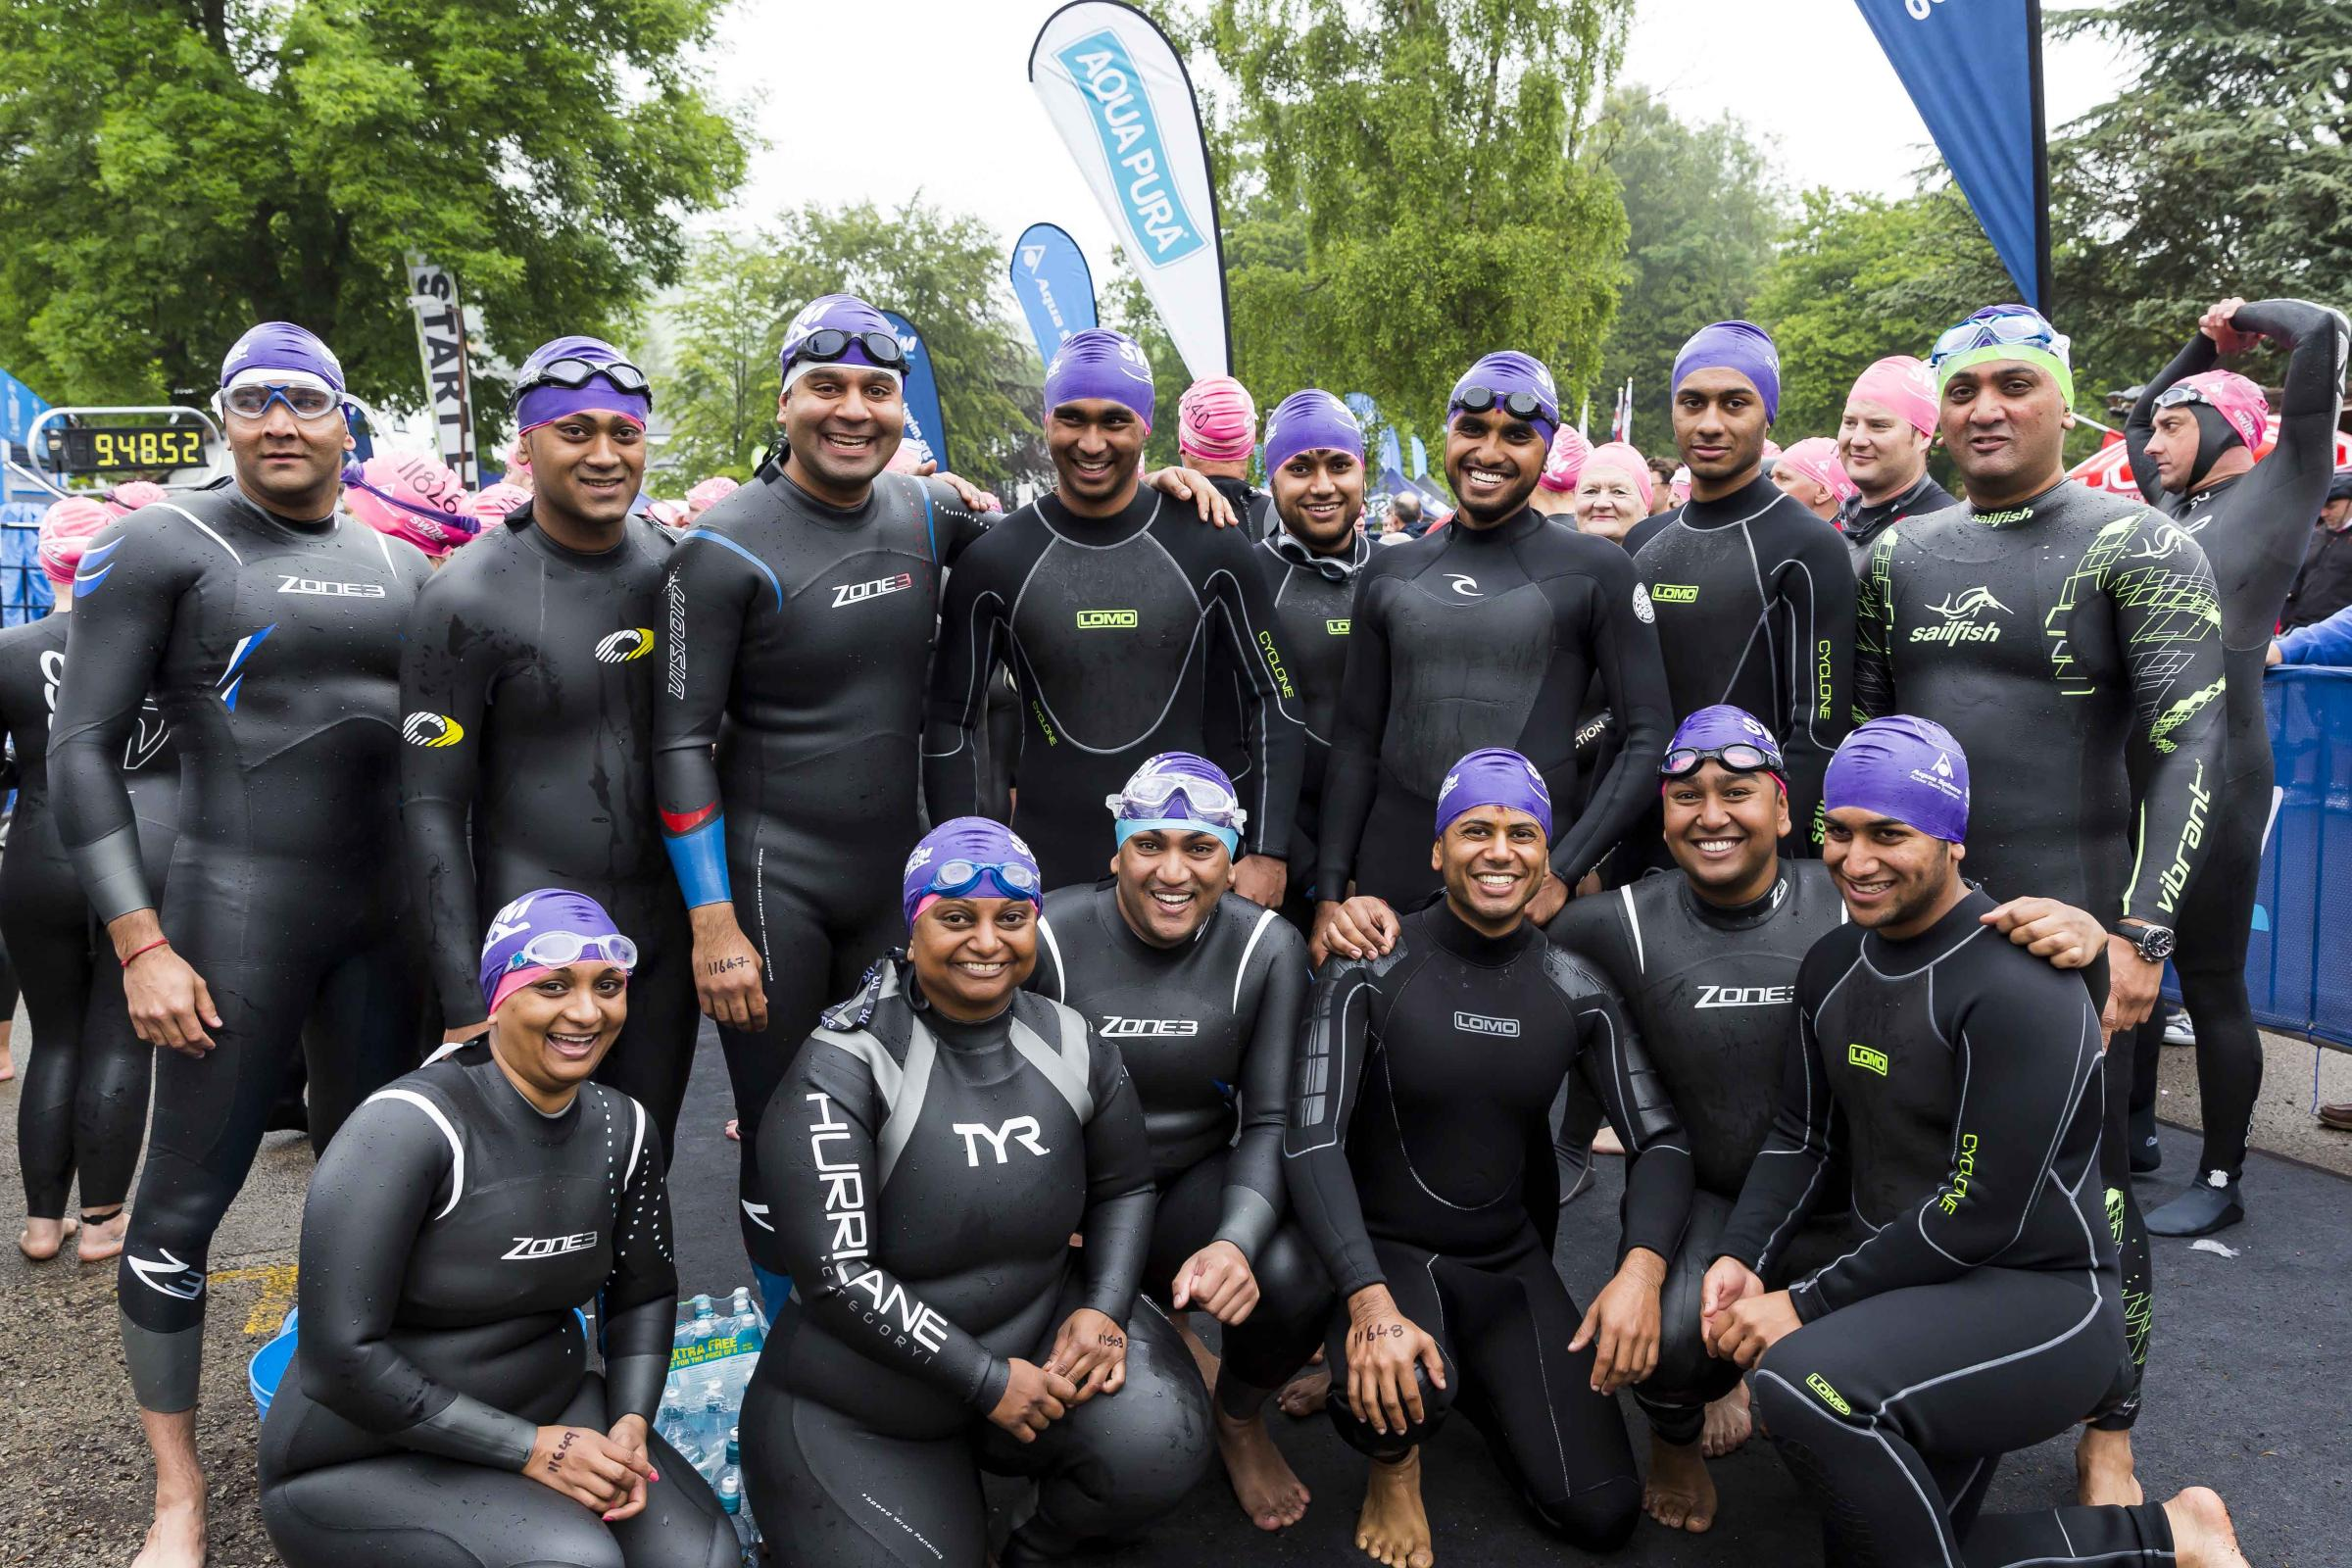 Members raised thousands for St Luke's Hospice taking part in the Great North Swim in Lake Windermere earlier this year